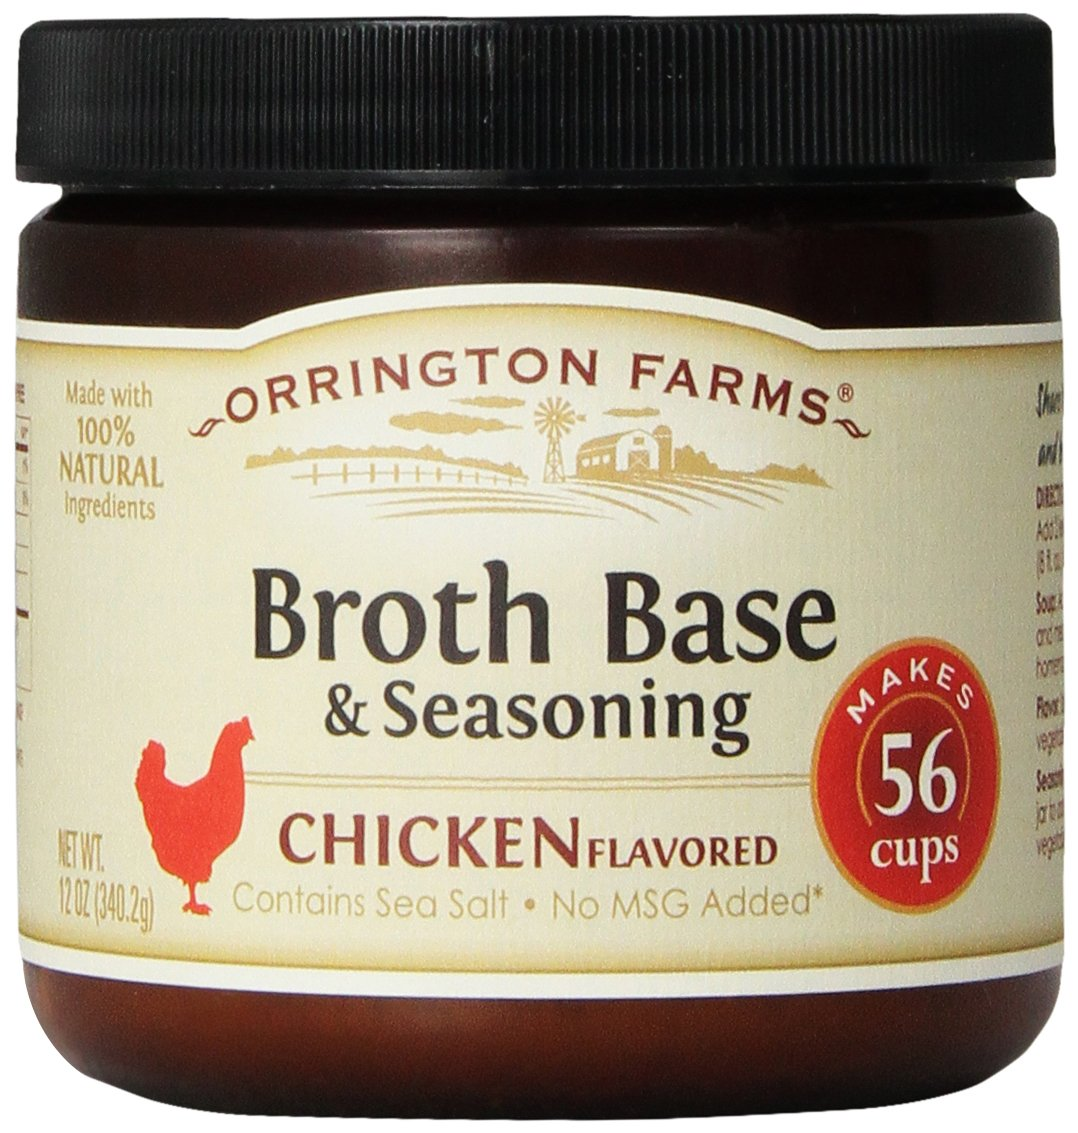 Orrington Farms Chicken Flavored Broth Base & Seasoning, 12-Ounce (Pack of 6)